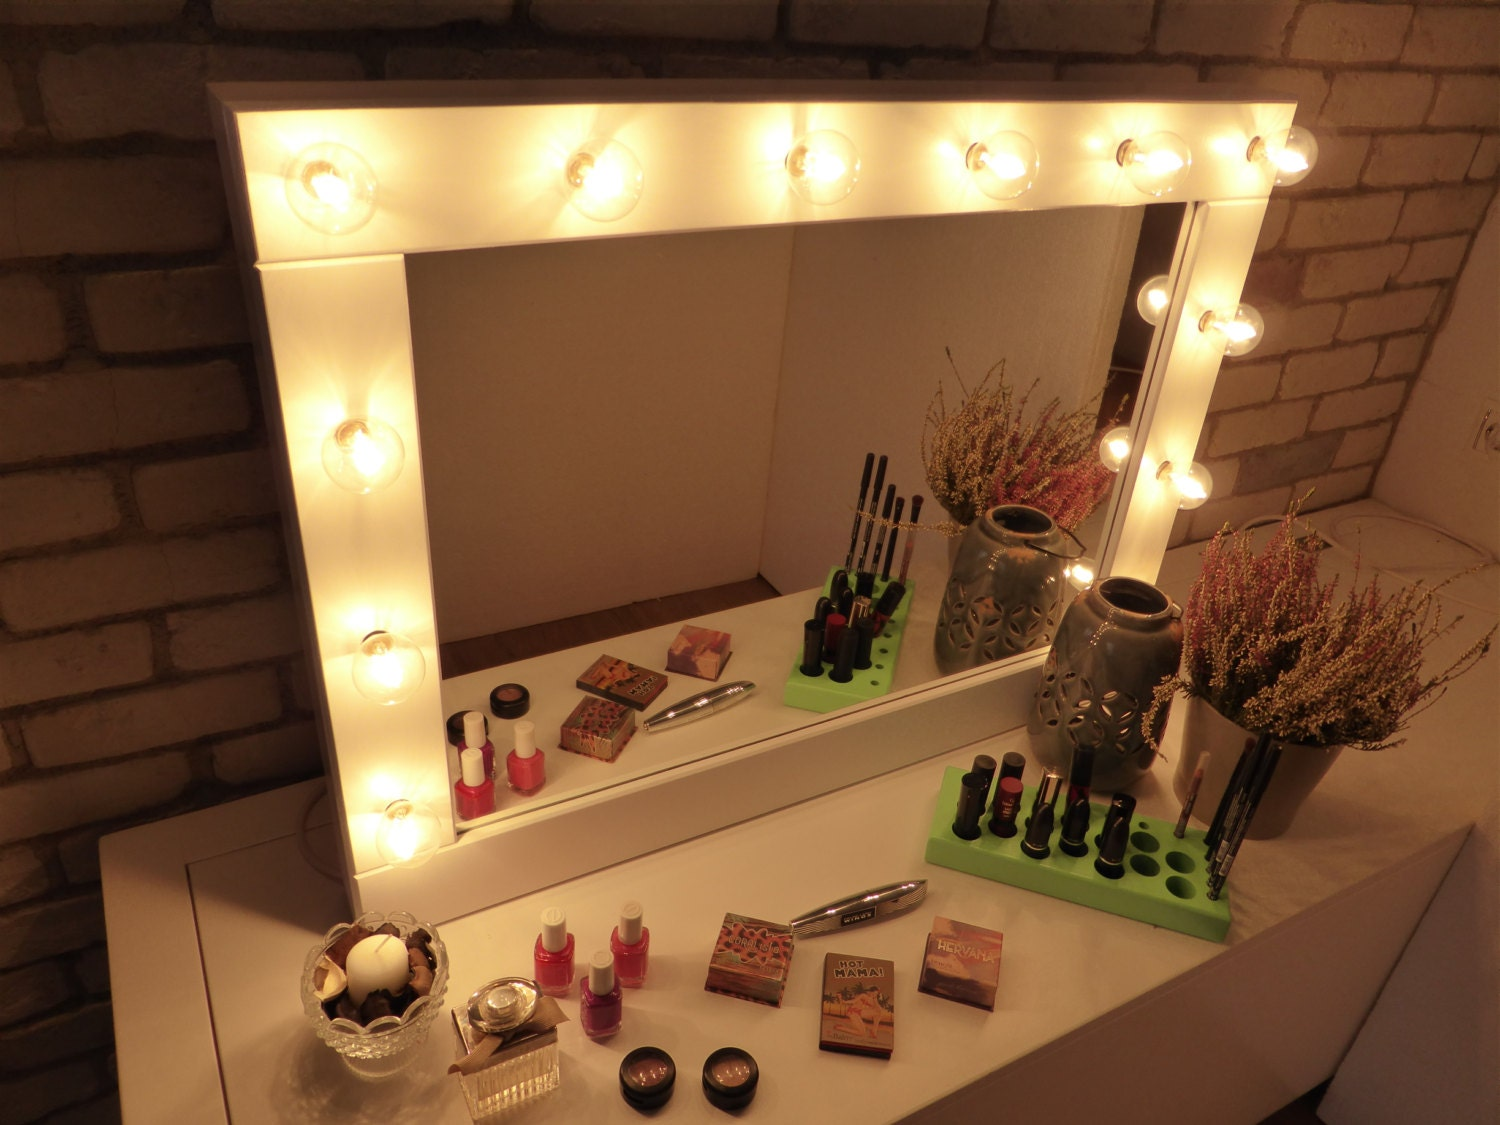 Vanity Light Up Makeup Mirrors : Make up Mirror with lights Vanity mirror by CraftersCalendar